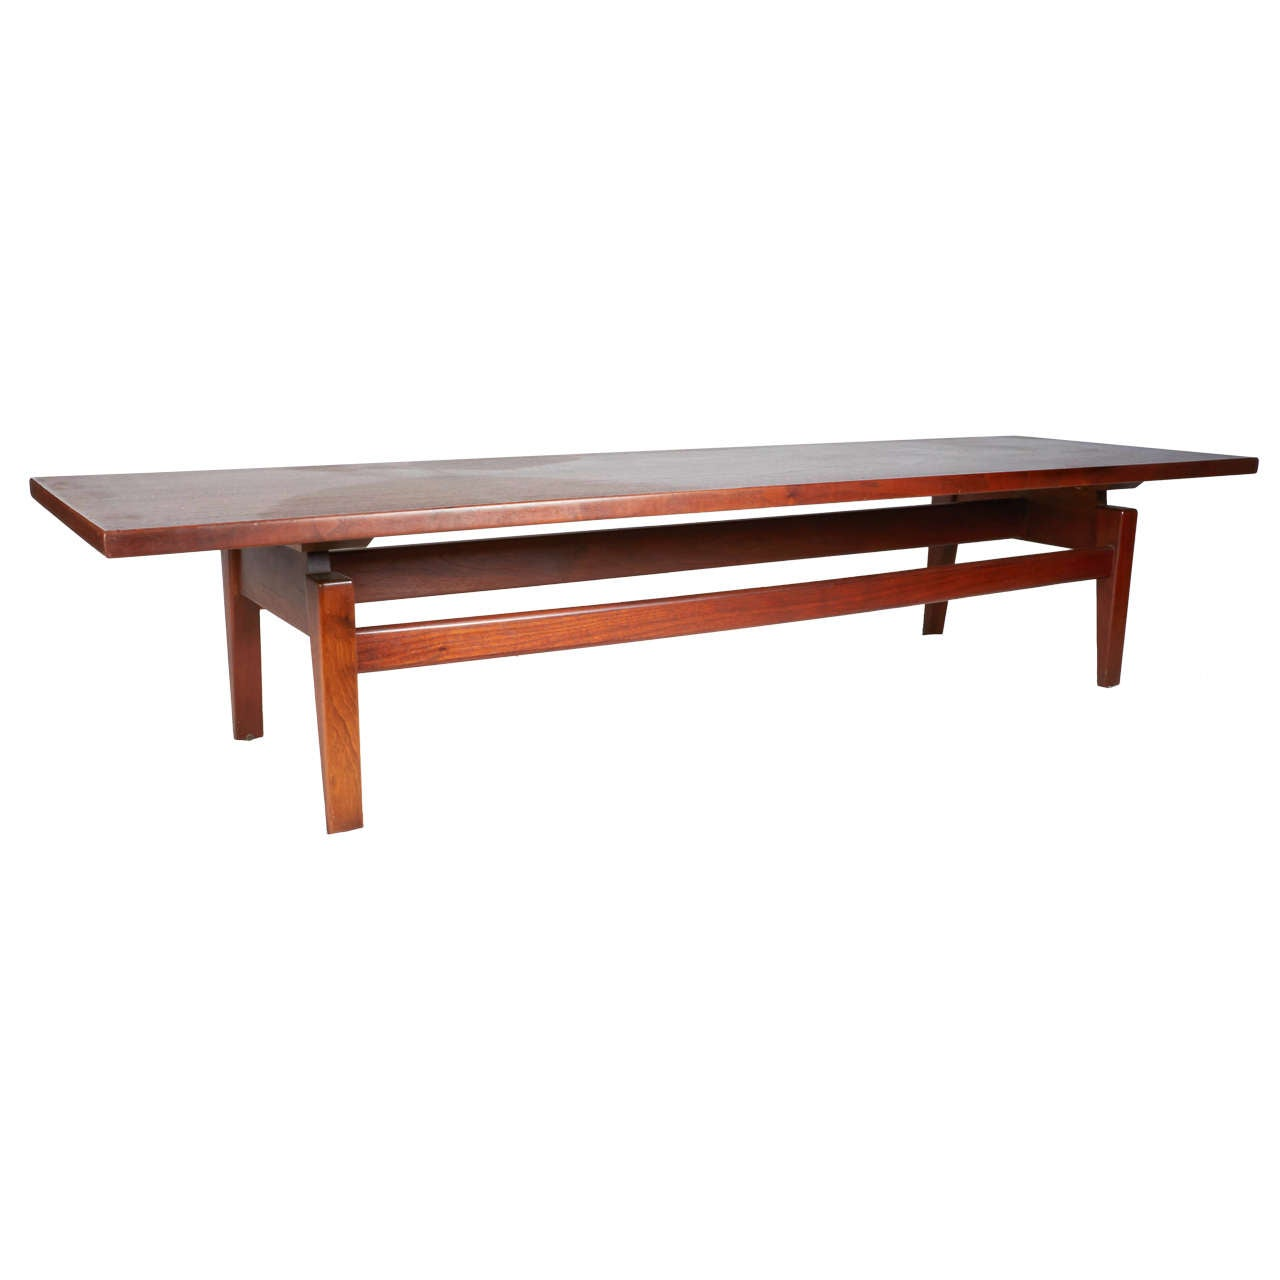 Handsome Long Walnut Coffee Table By Jens Risom At 1stdibs